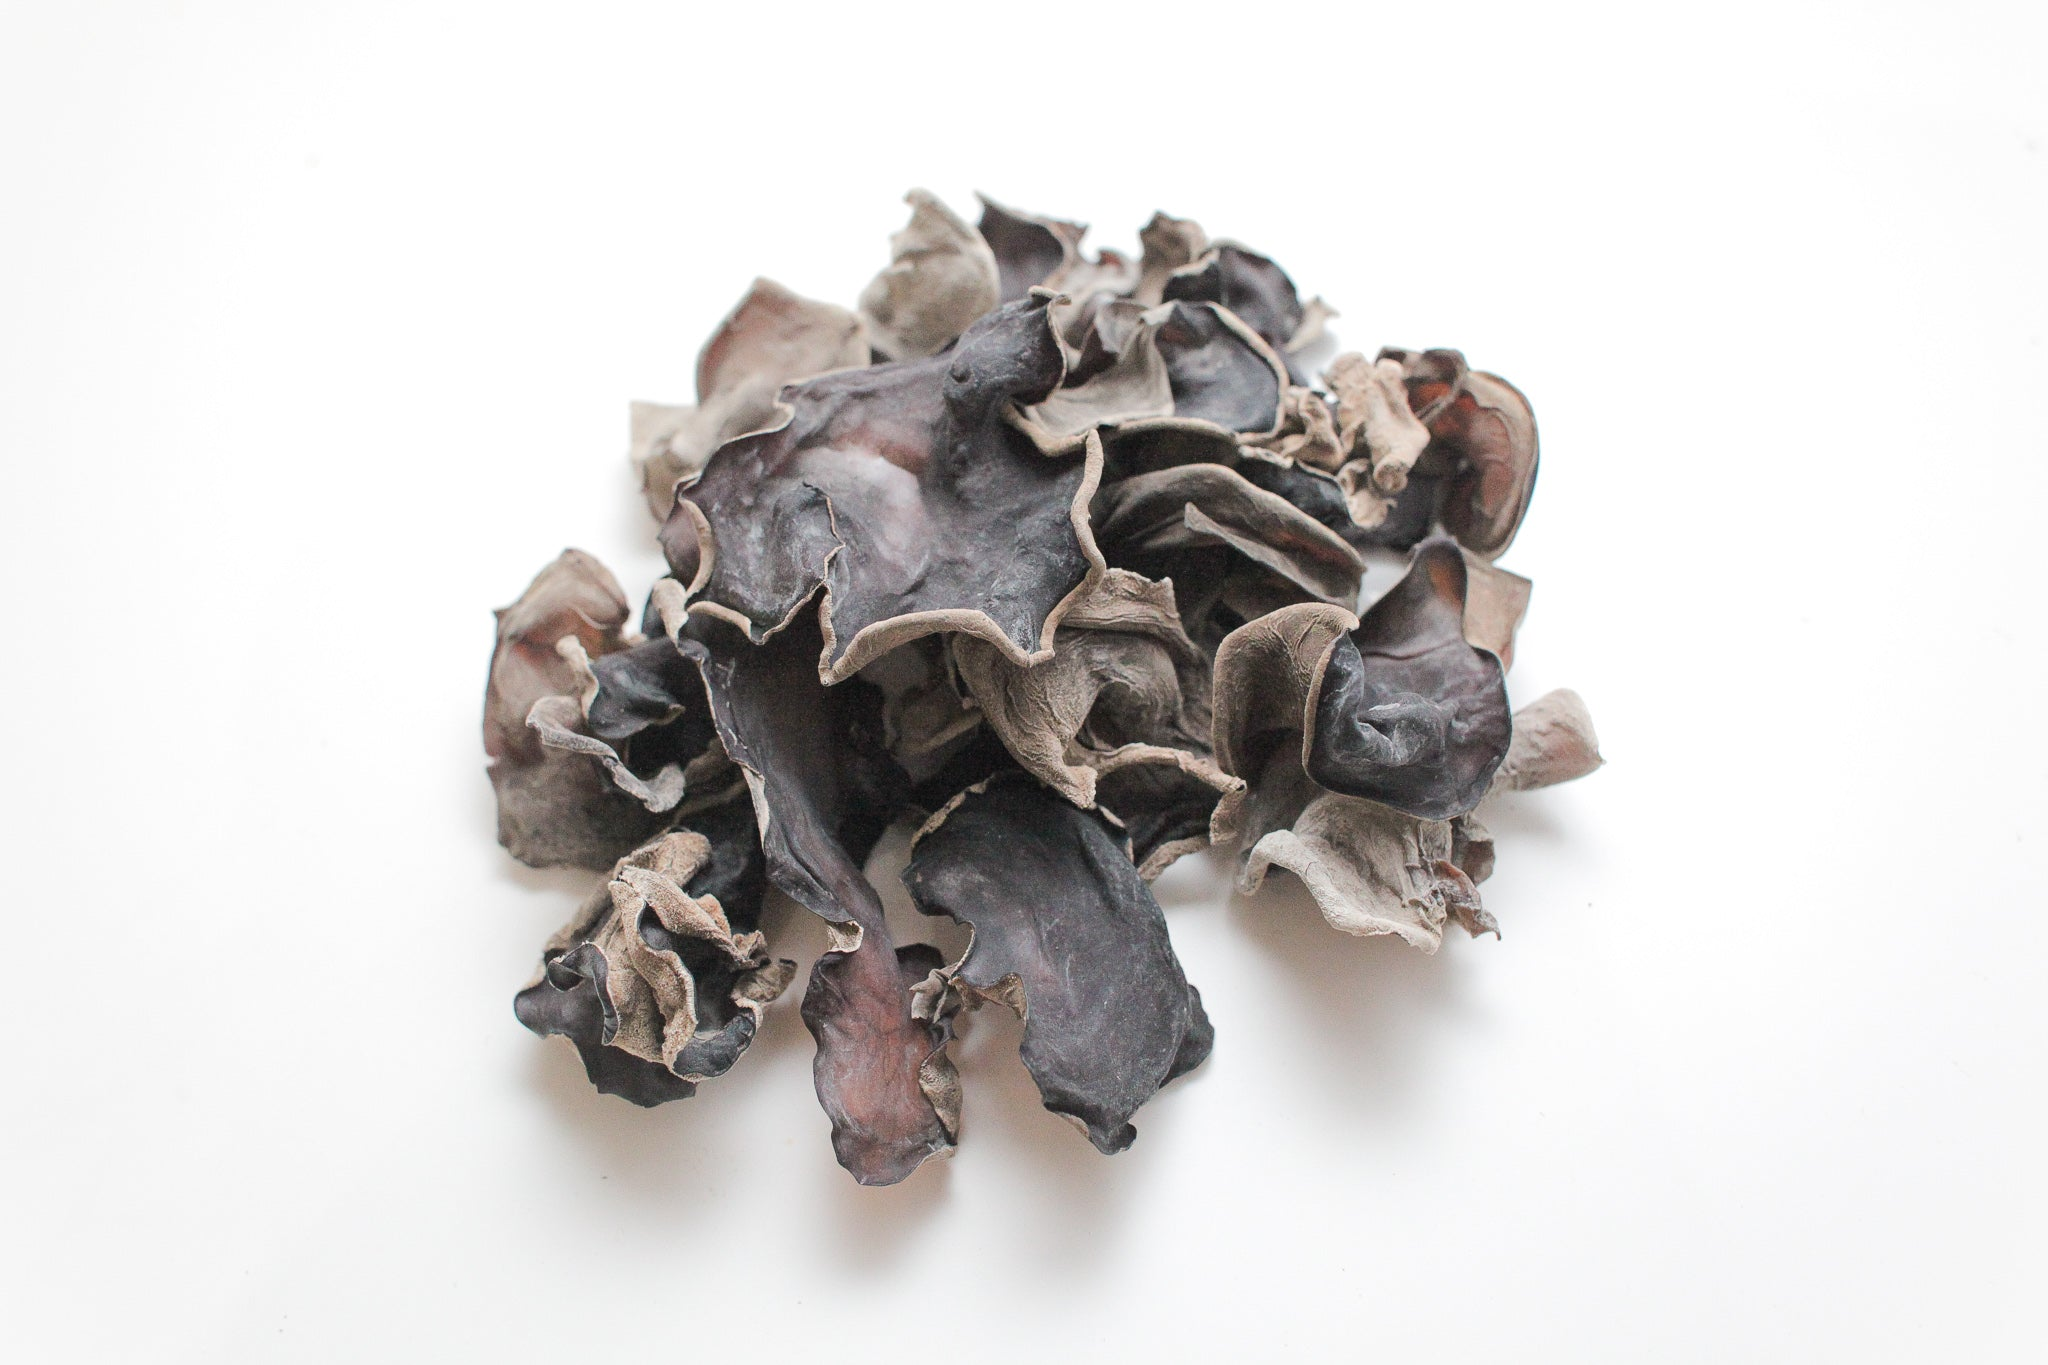 国産 乾燥きくらげ  Dried Wood Ear Mushroom (Black Fungus)